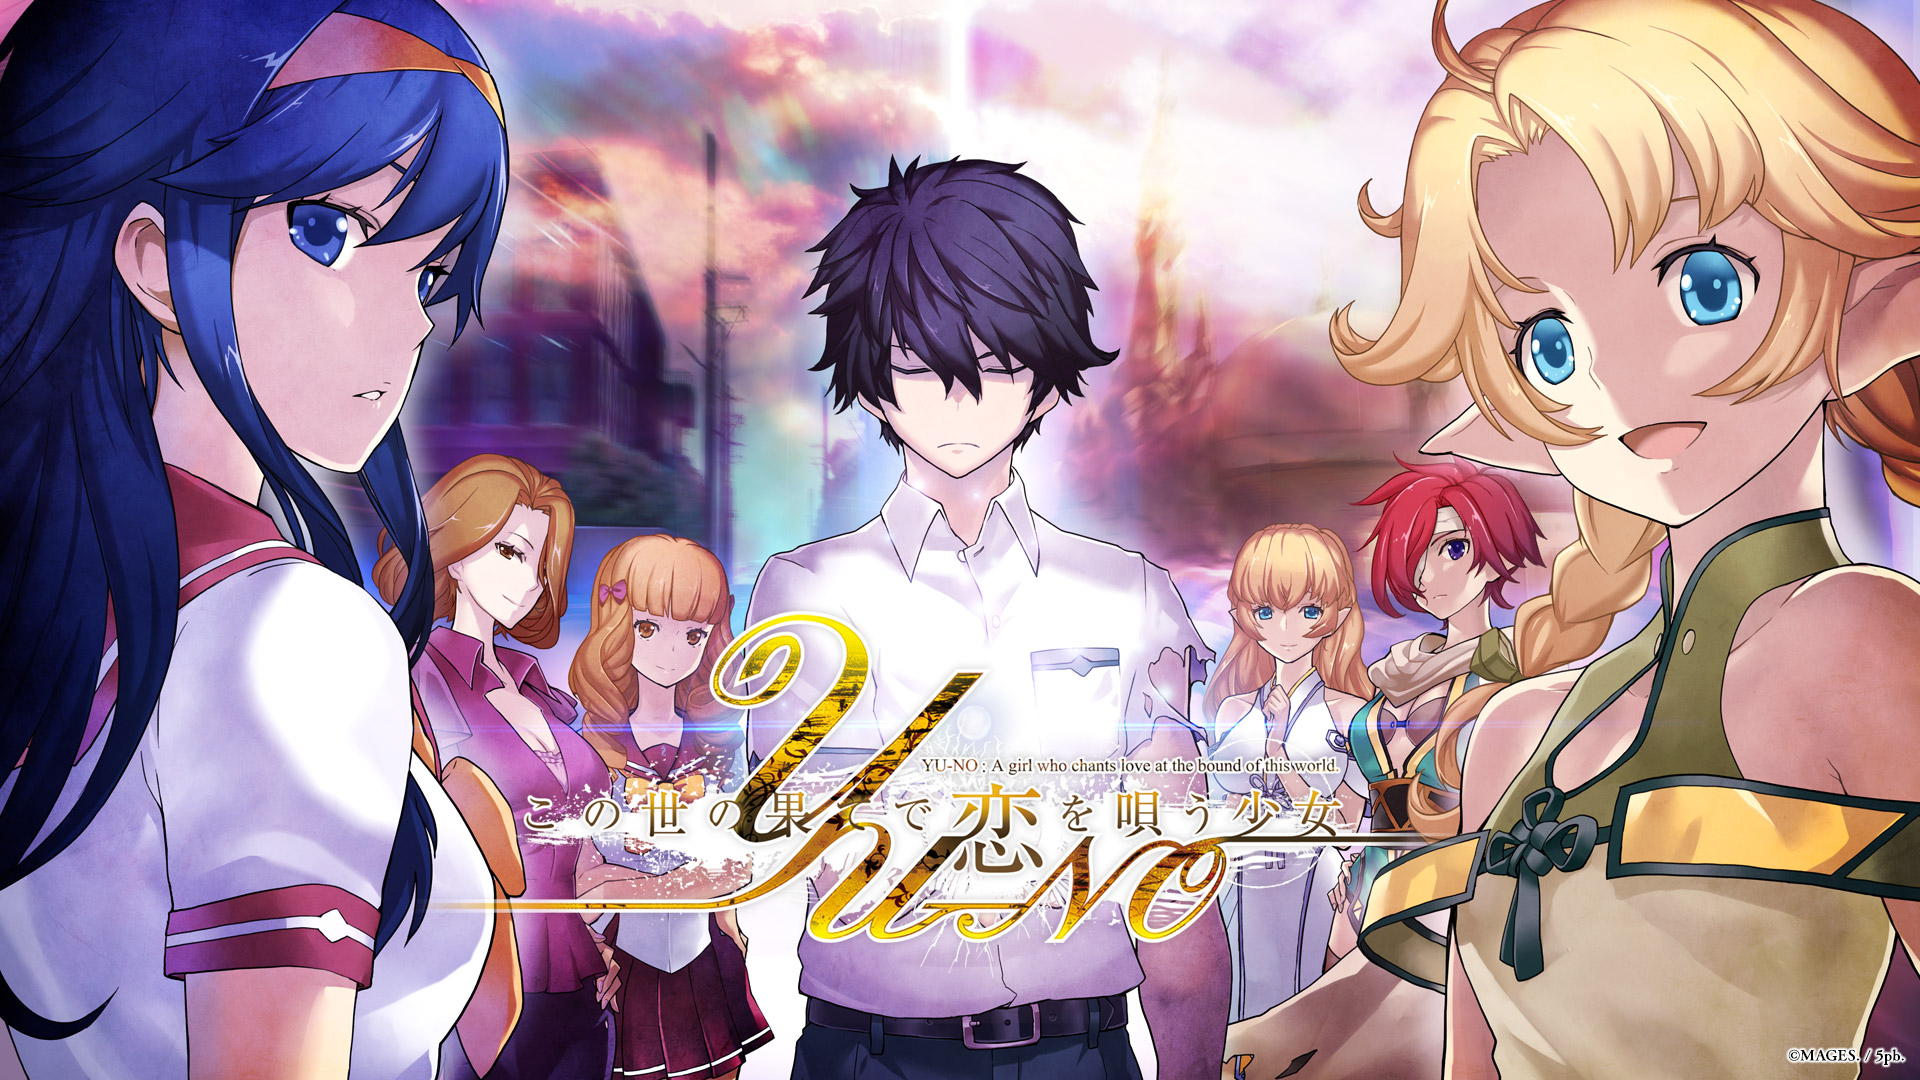 YU-NO's Remake On PS4 And PS Vita Hits 40,000 In Sales, Enjoy Your Free Wallpaper